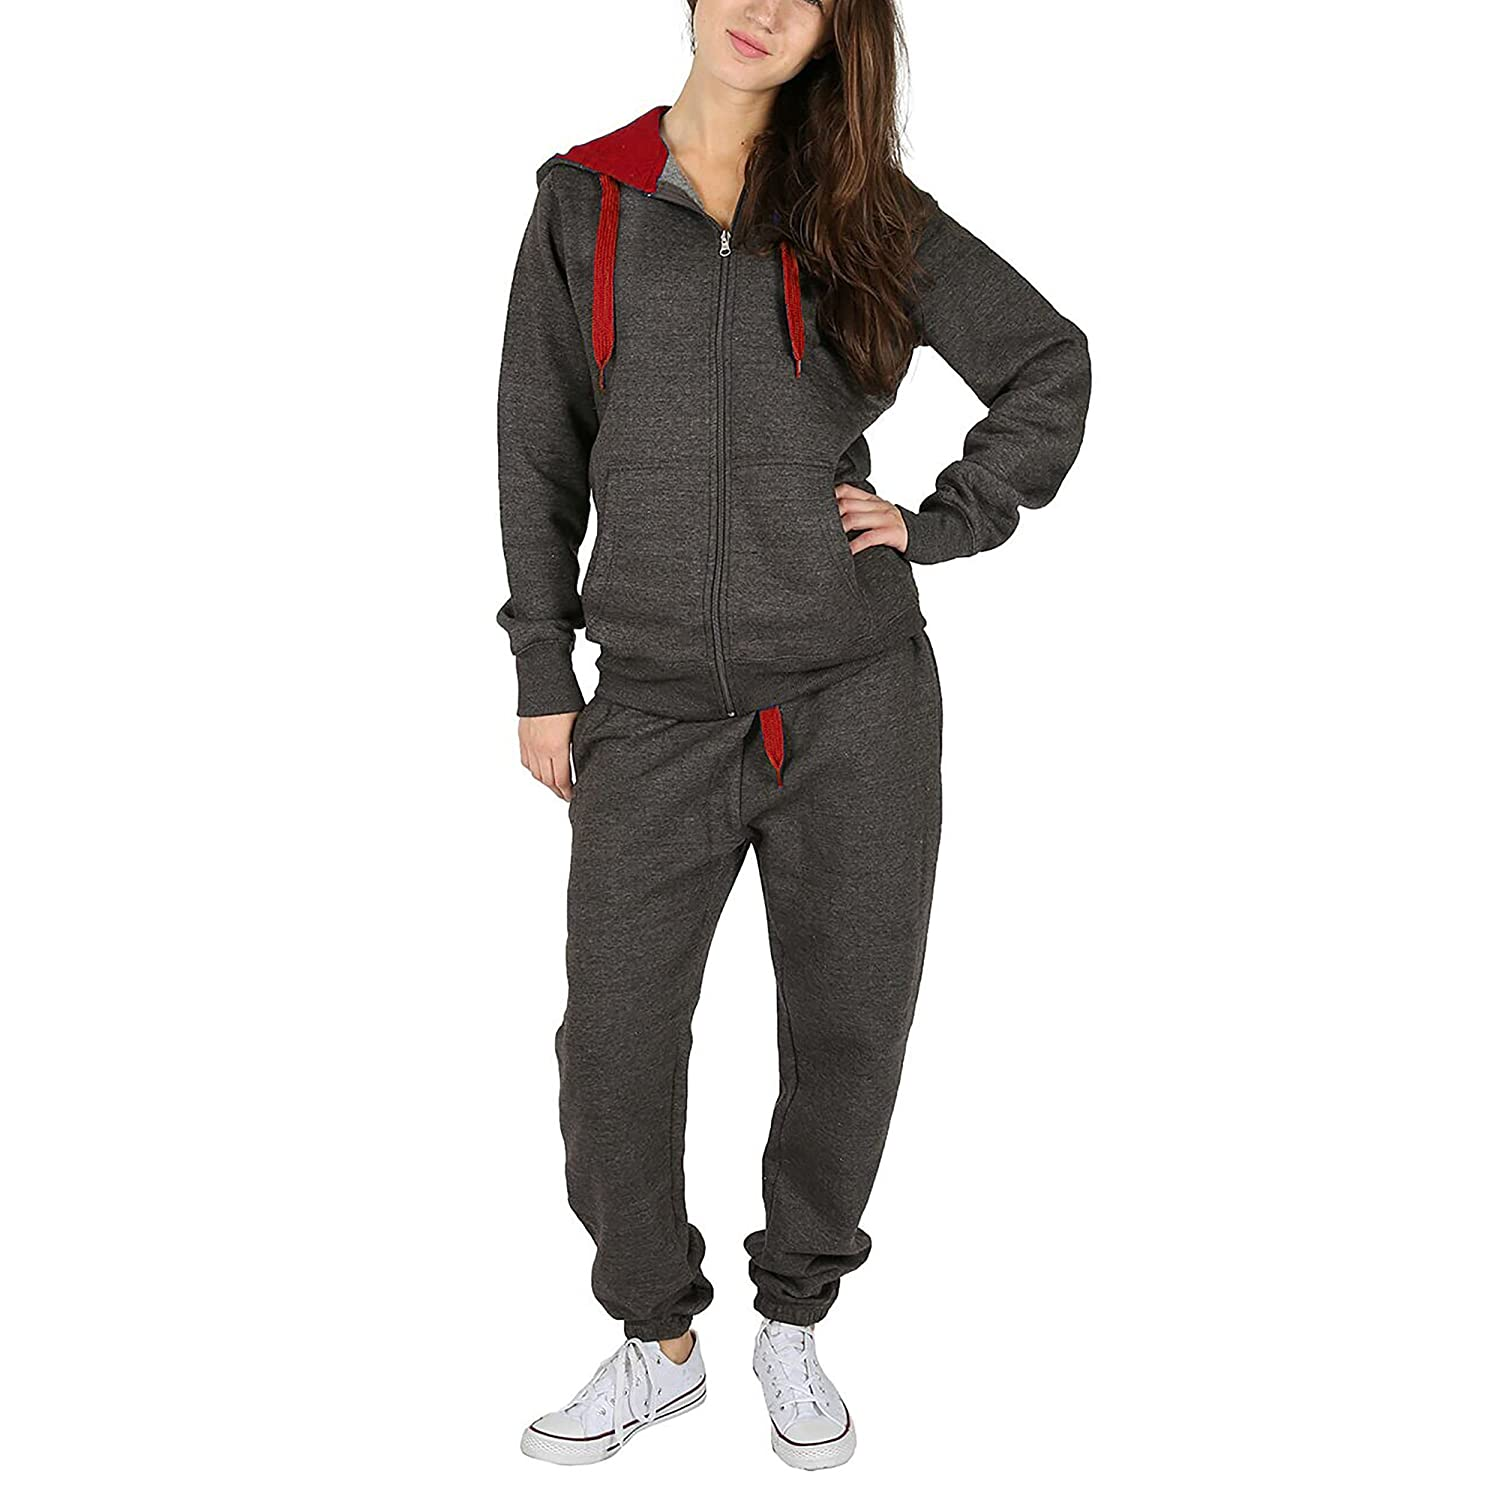 Simply Chic Outlet New Womens Plus Size Contrast Cord Full Zip Brushed Fleece Tracksuit